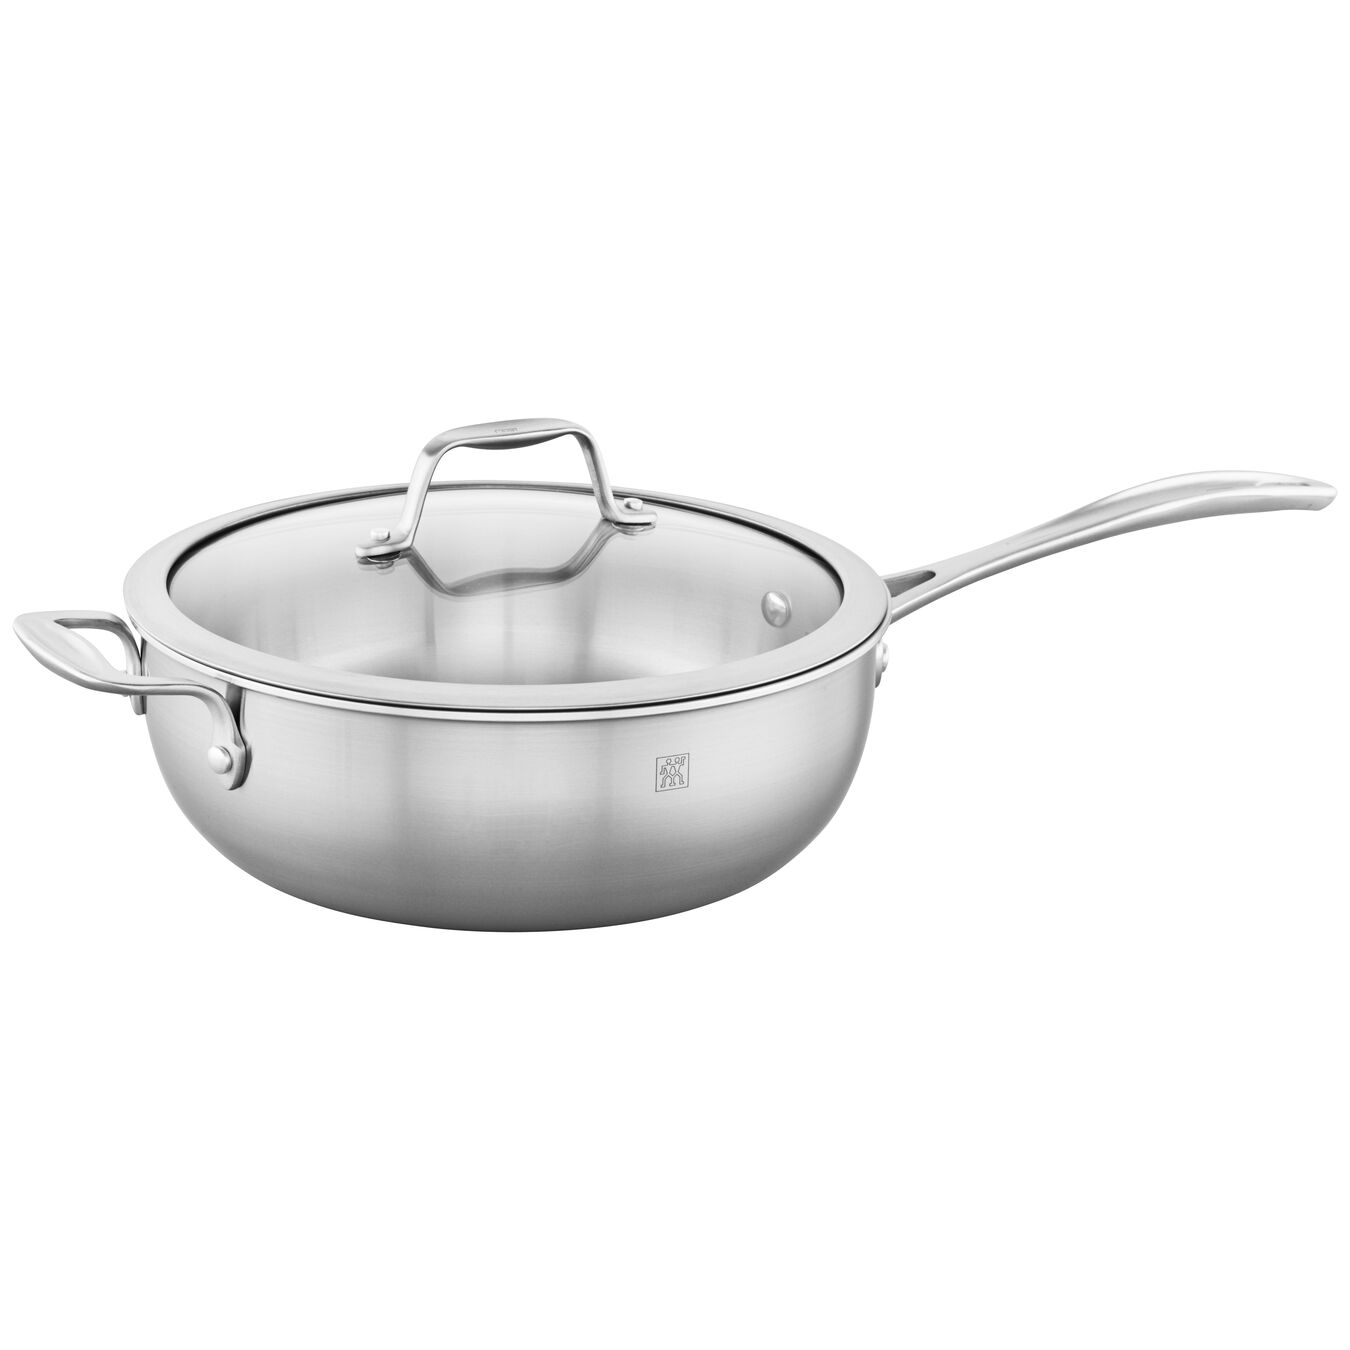 10-inch, 18/10 Stainless Steel, Non-stick, Saute pan,,large 3